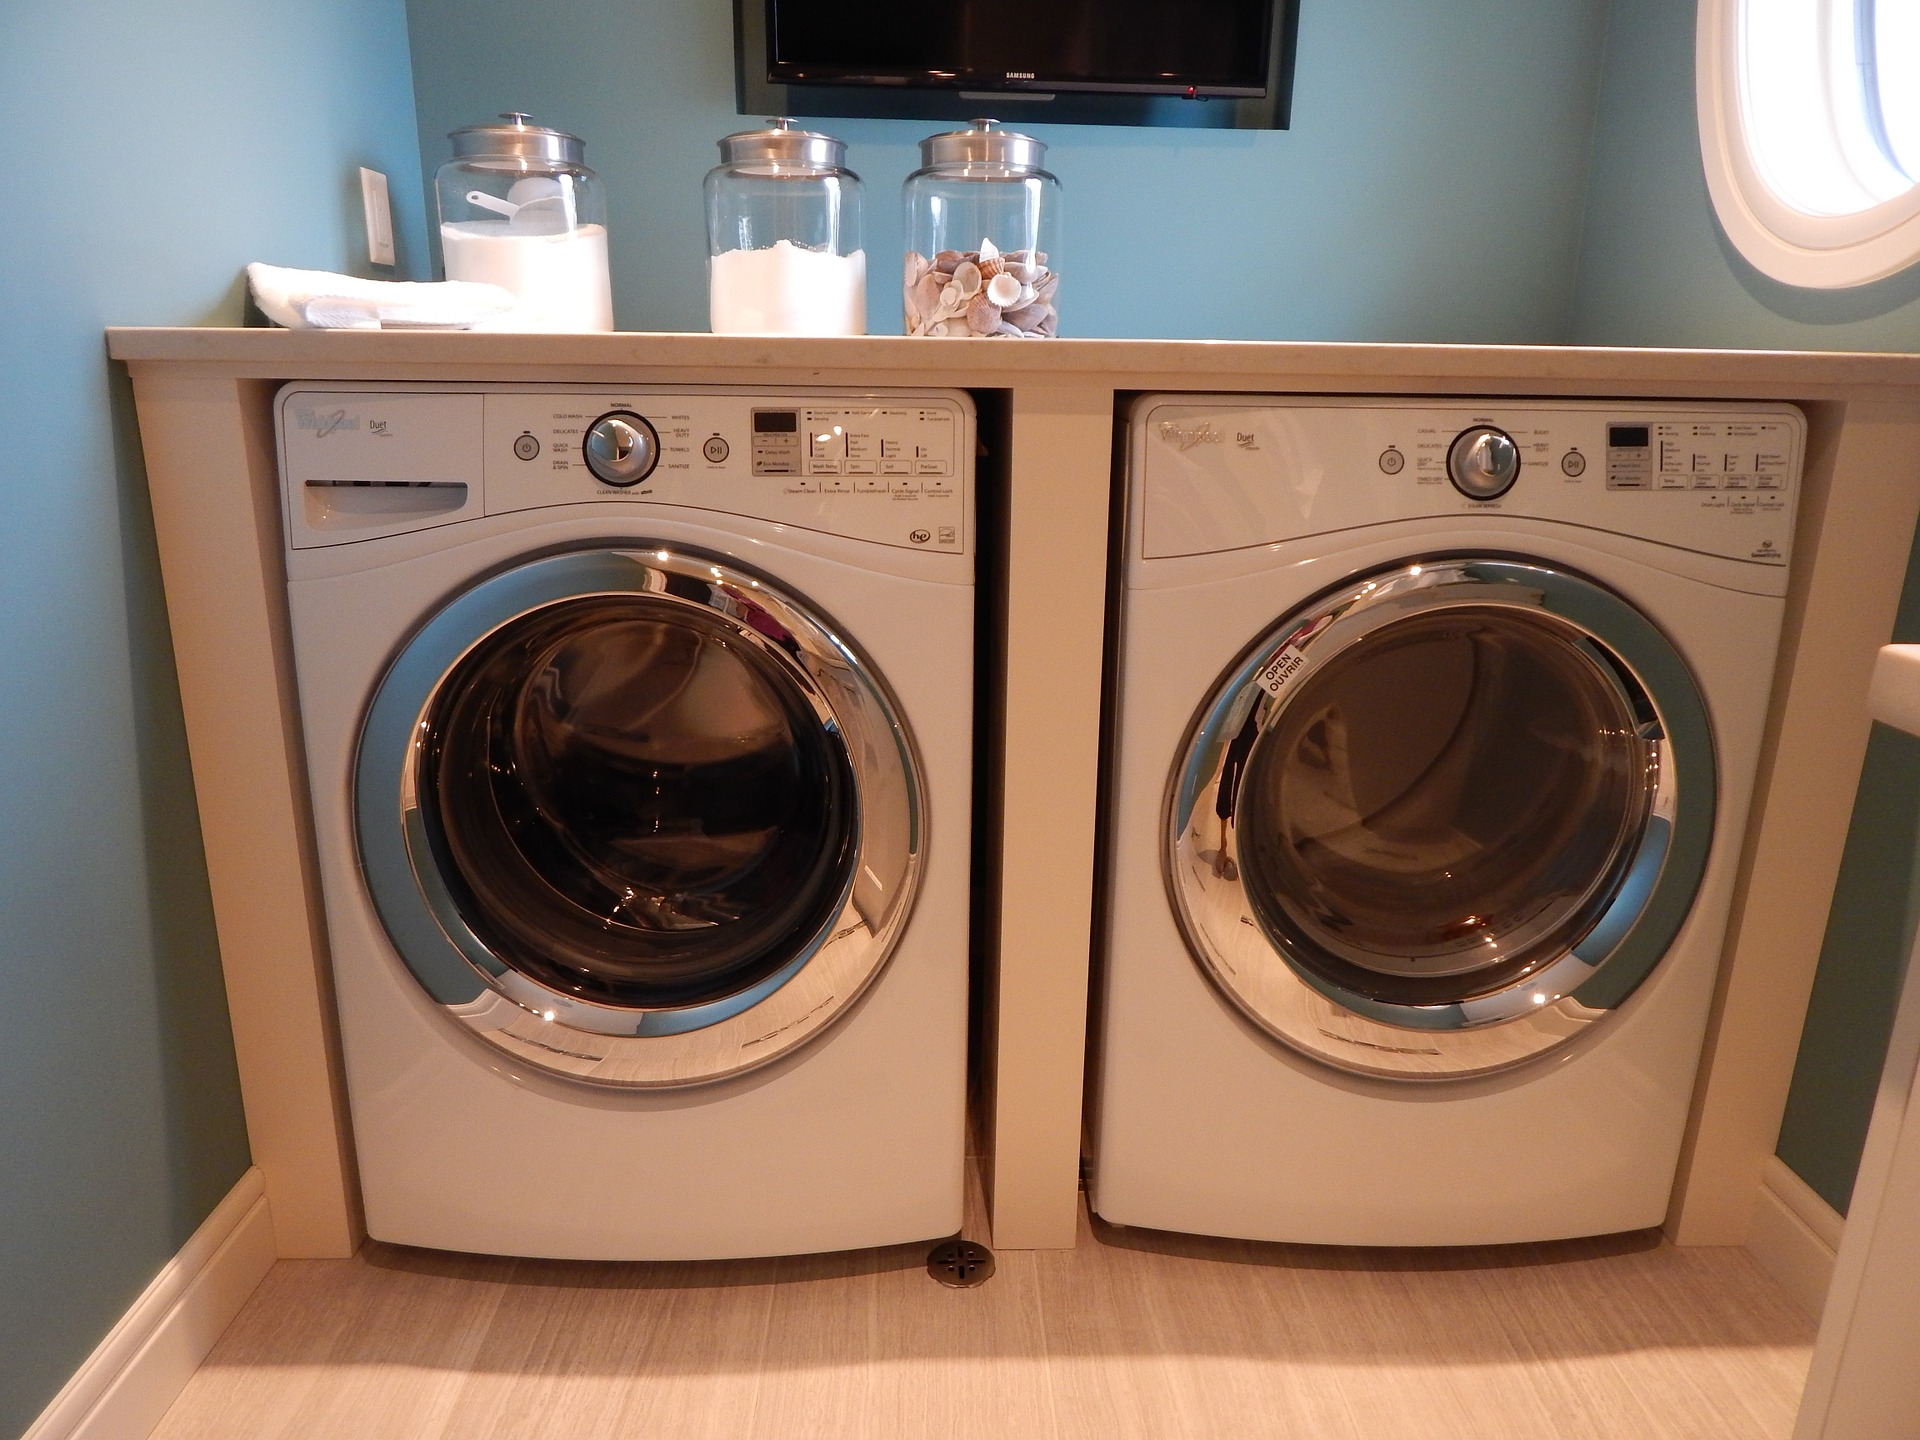 How to Dispose of a Washer and Dryer - Life Storage Blog